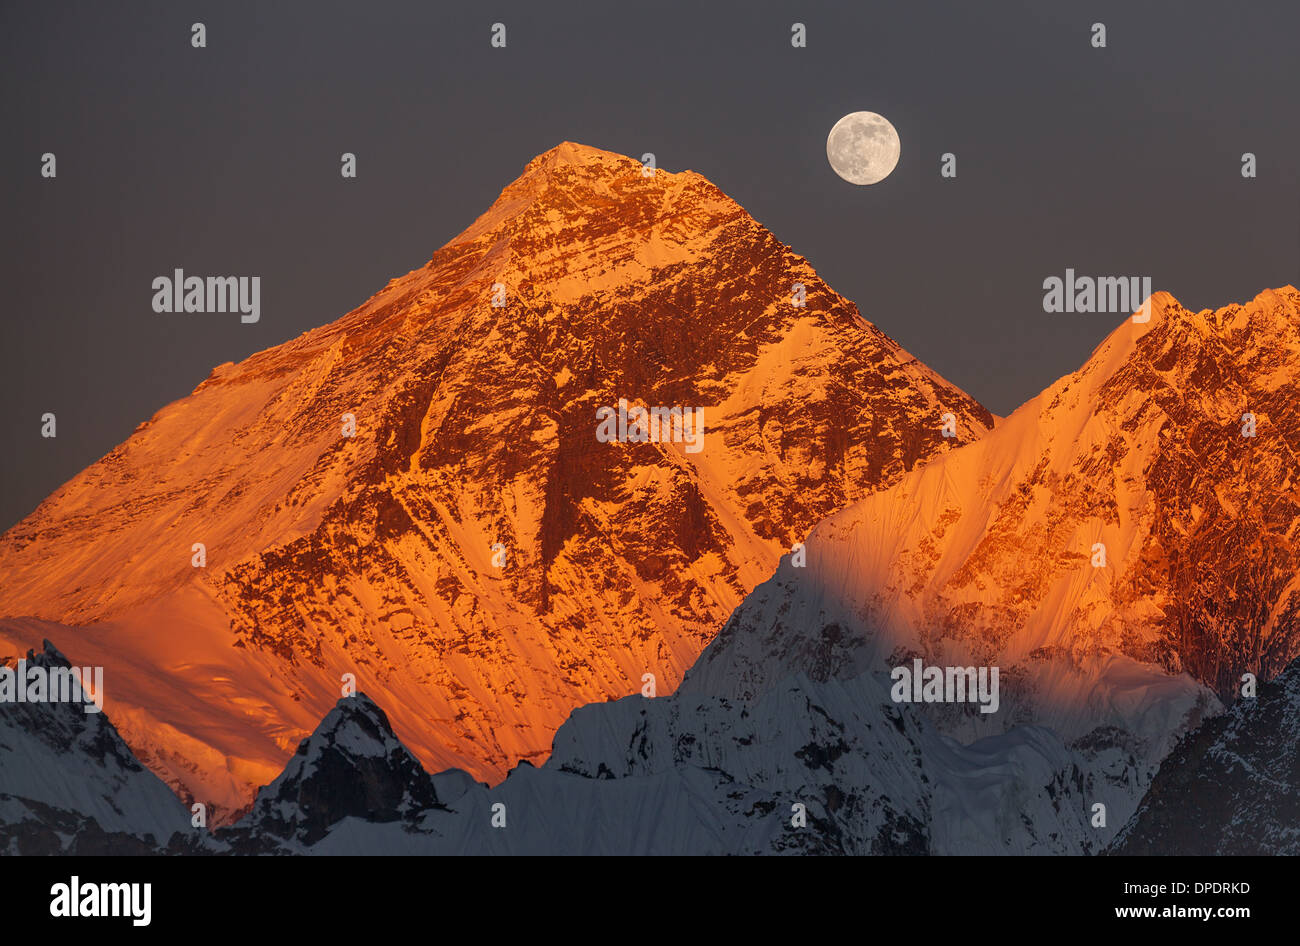 Majesty of nature. Golden pyramid of Mount Everest (8,848 m) at sunset on a full moon. Canon 5D Mk II. - Stock Image